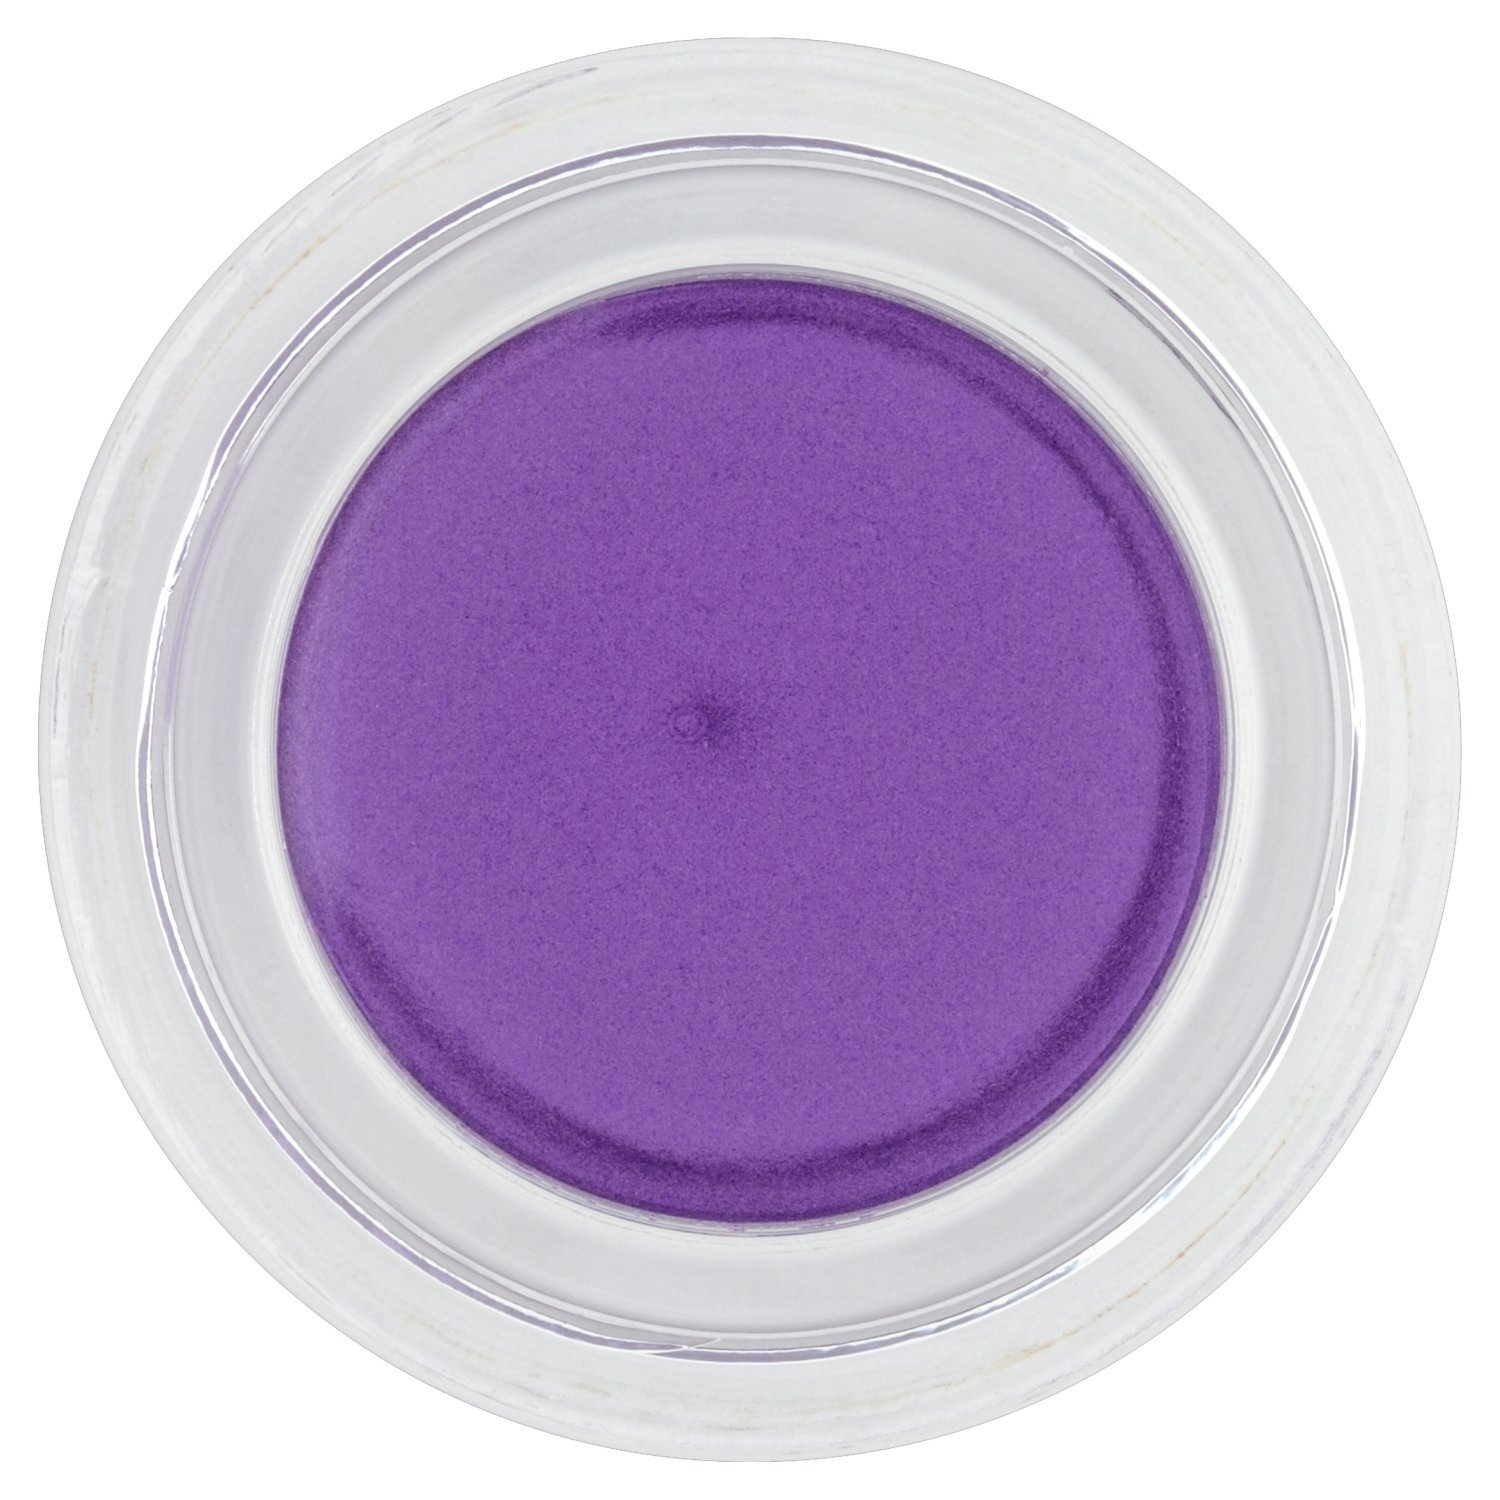 Max Factor Excess Shimmer Eyeshadow -  Endless Purple